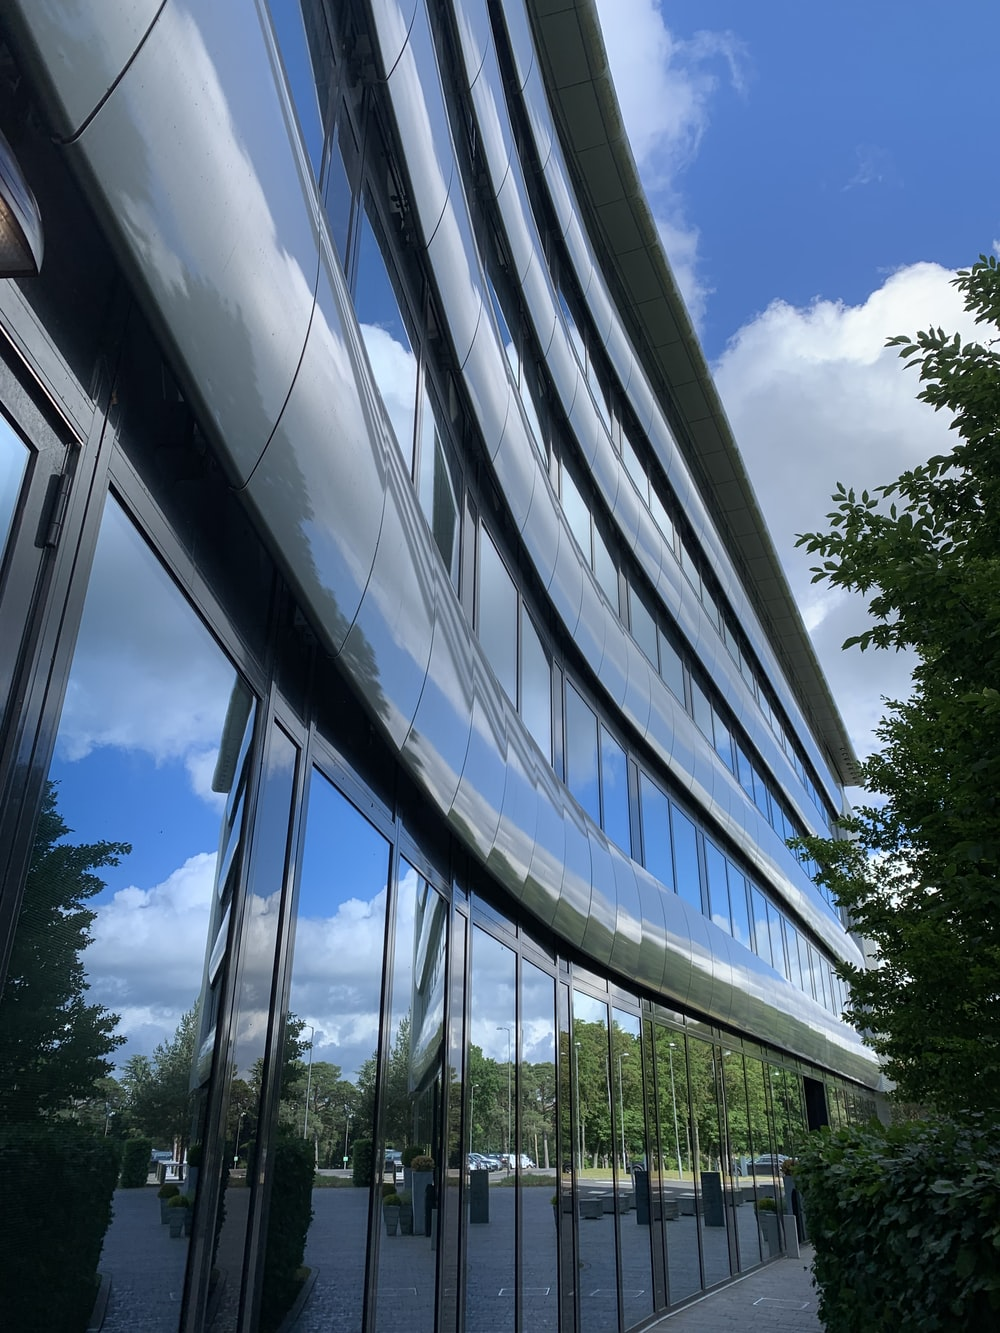 architectural photography of glass curtain building